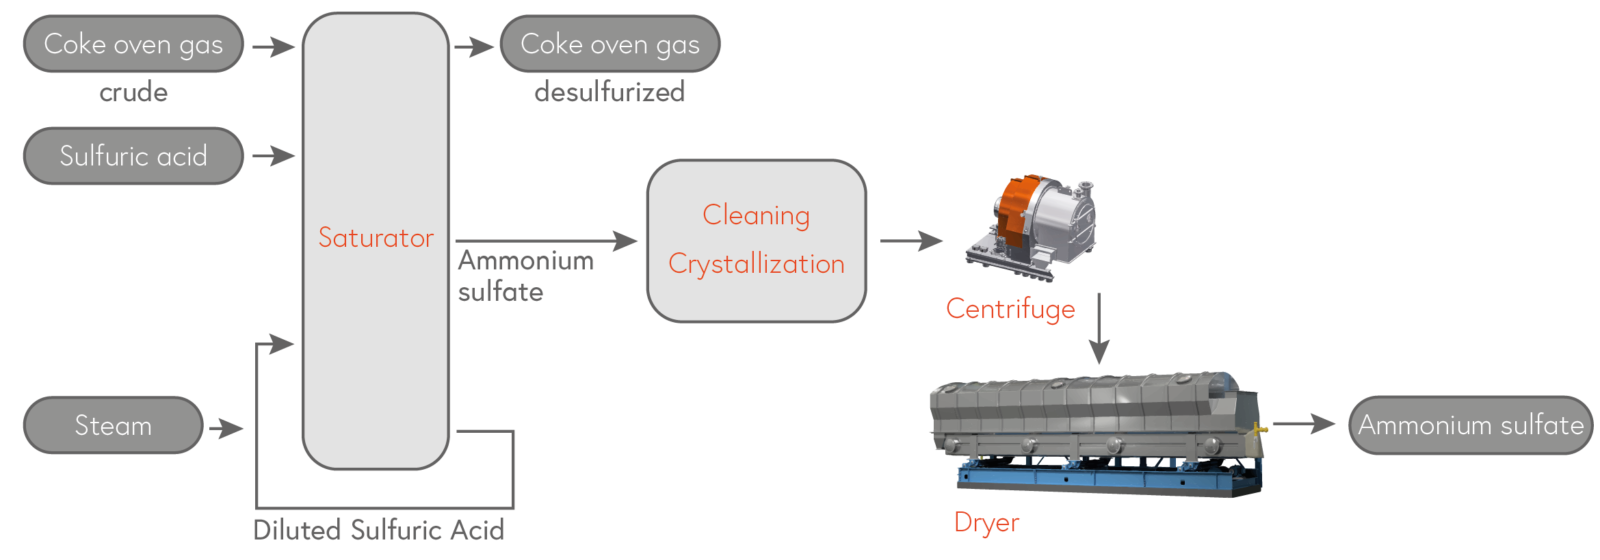 By-product of the desulfurization of coke oven gas.